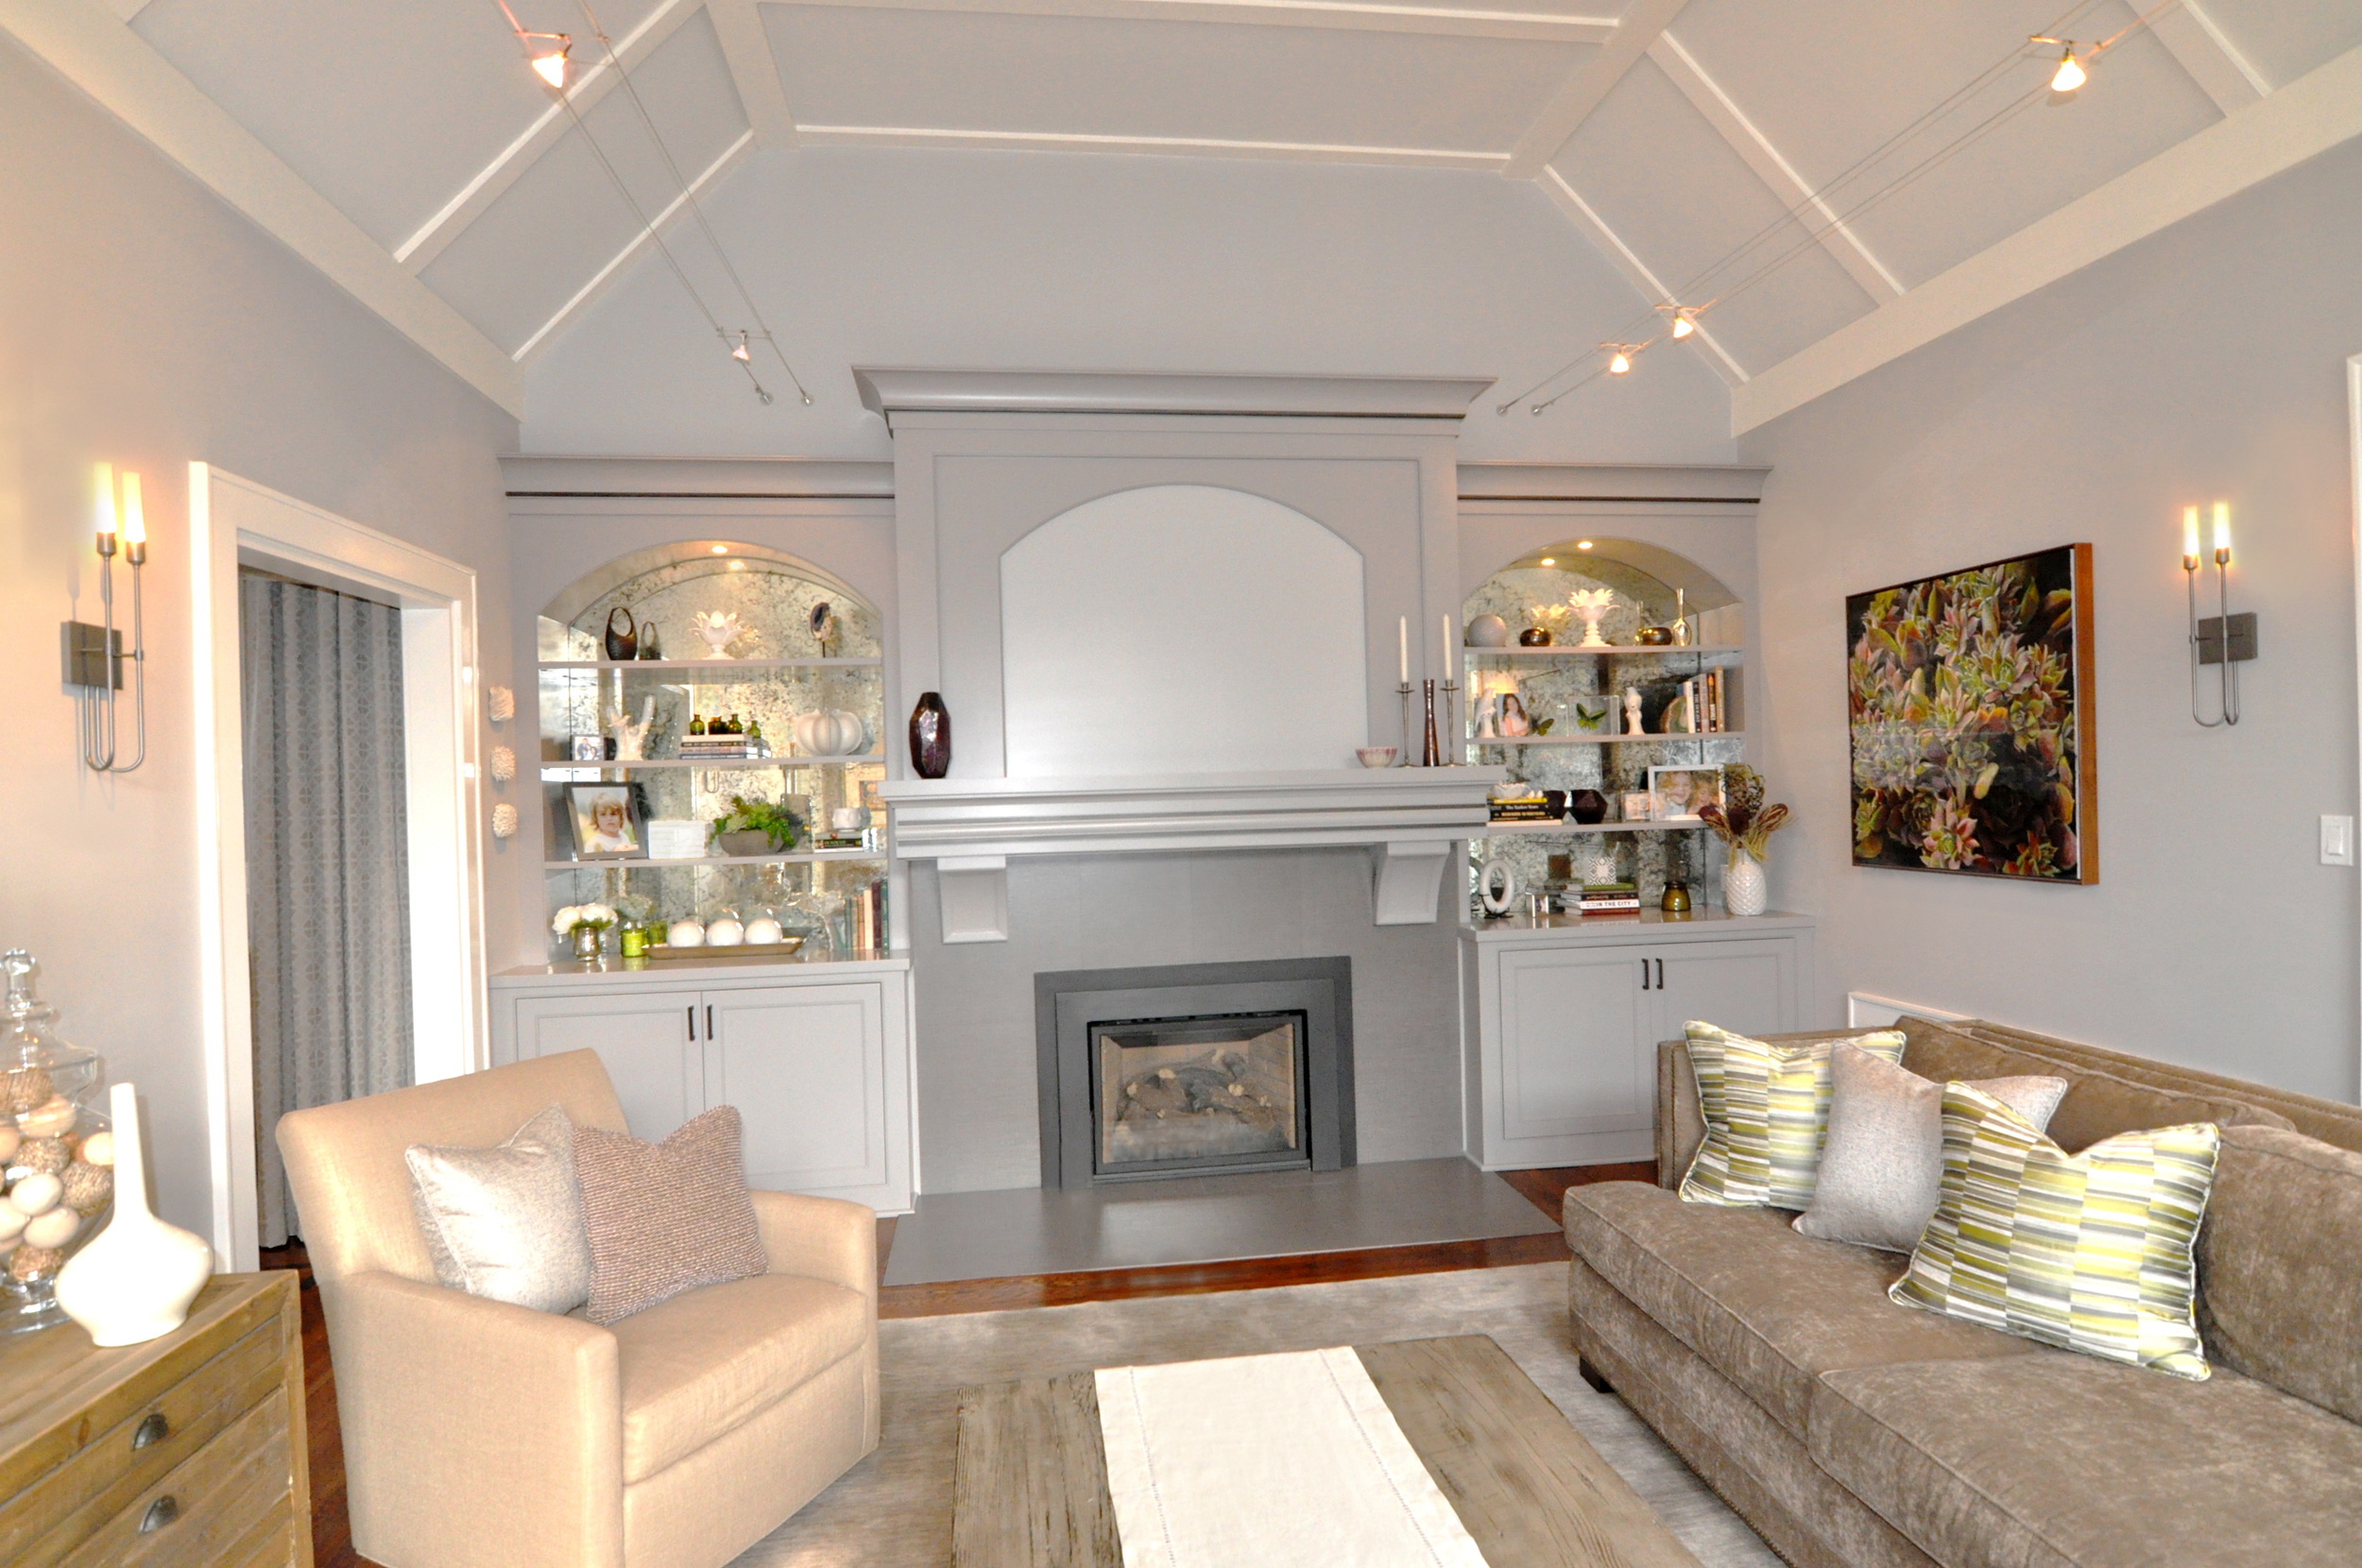 UNDERSTATED ELEGANT LIVING ROOM , Larchmont, NY: The custom-designed  fireplace, overmantel and built-in embraces the grandeur of the living room ceiling height. The existing hood was low, odd and awkward, unsuited for the charming home.  The  shelving mimics the arches of the large front window and the antiqued mirror back reflects their beauty, as well as natural light.  The new fireplace facade and hearth utilizes large format textured porcelain tiles to frame the new gas fireplace. Contemporary torch-like sconces honor the home's history and the homeowner's modern sensibility, while touches of chartreuse, spring-green and plum accessories are at home with the room's natural  hues.